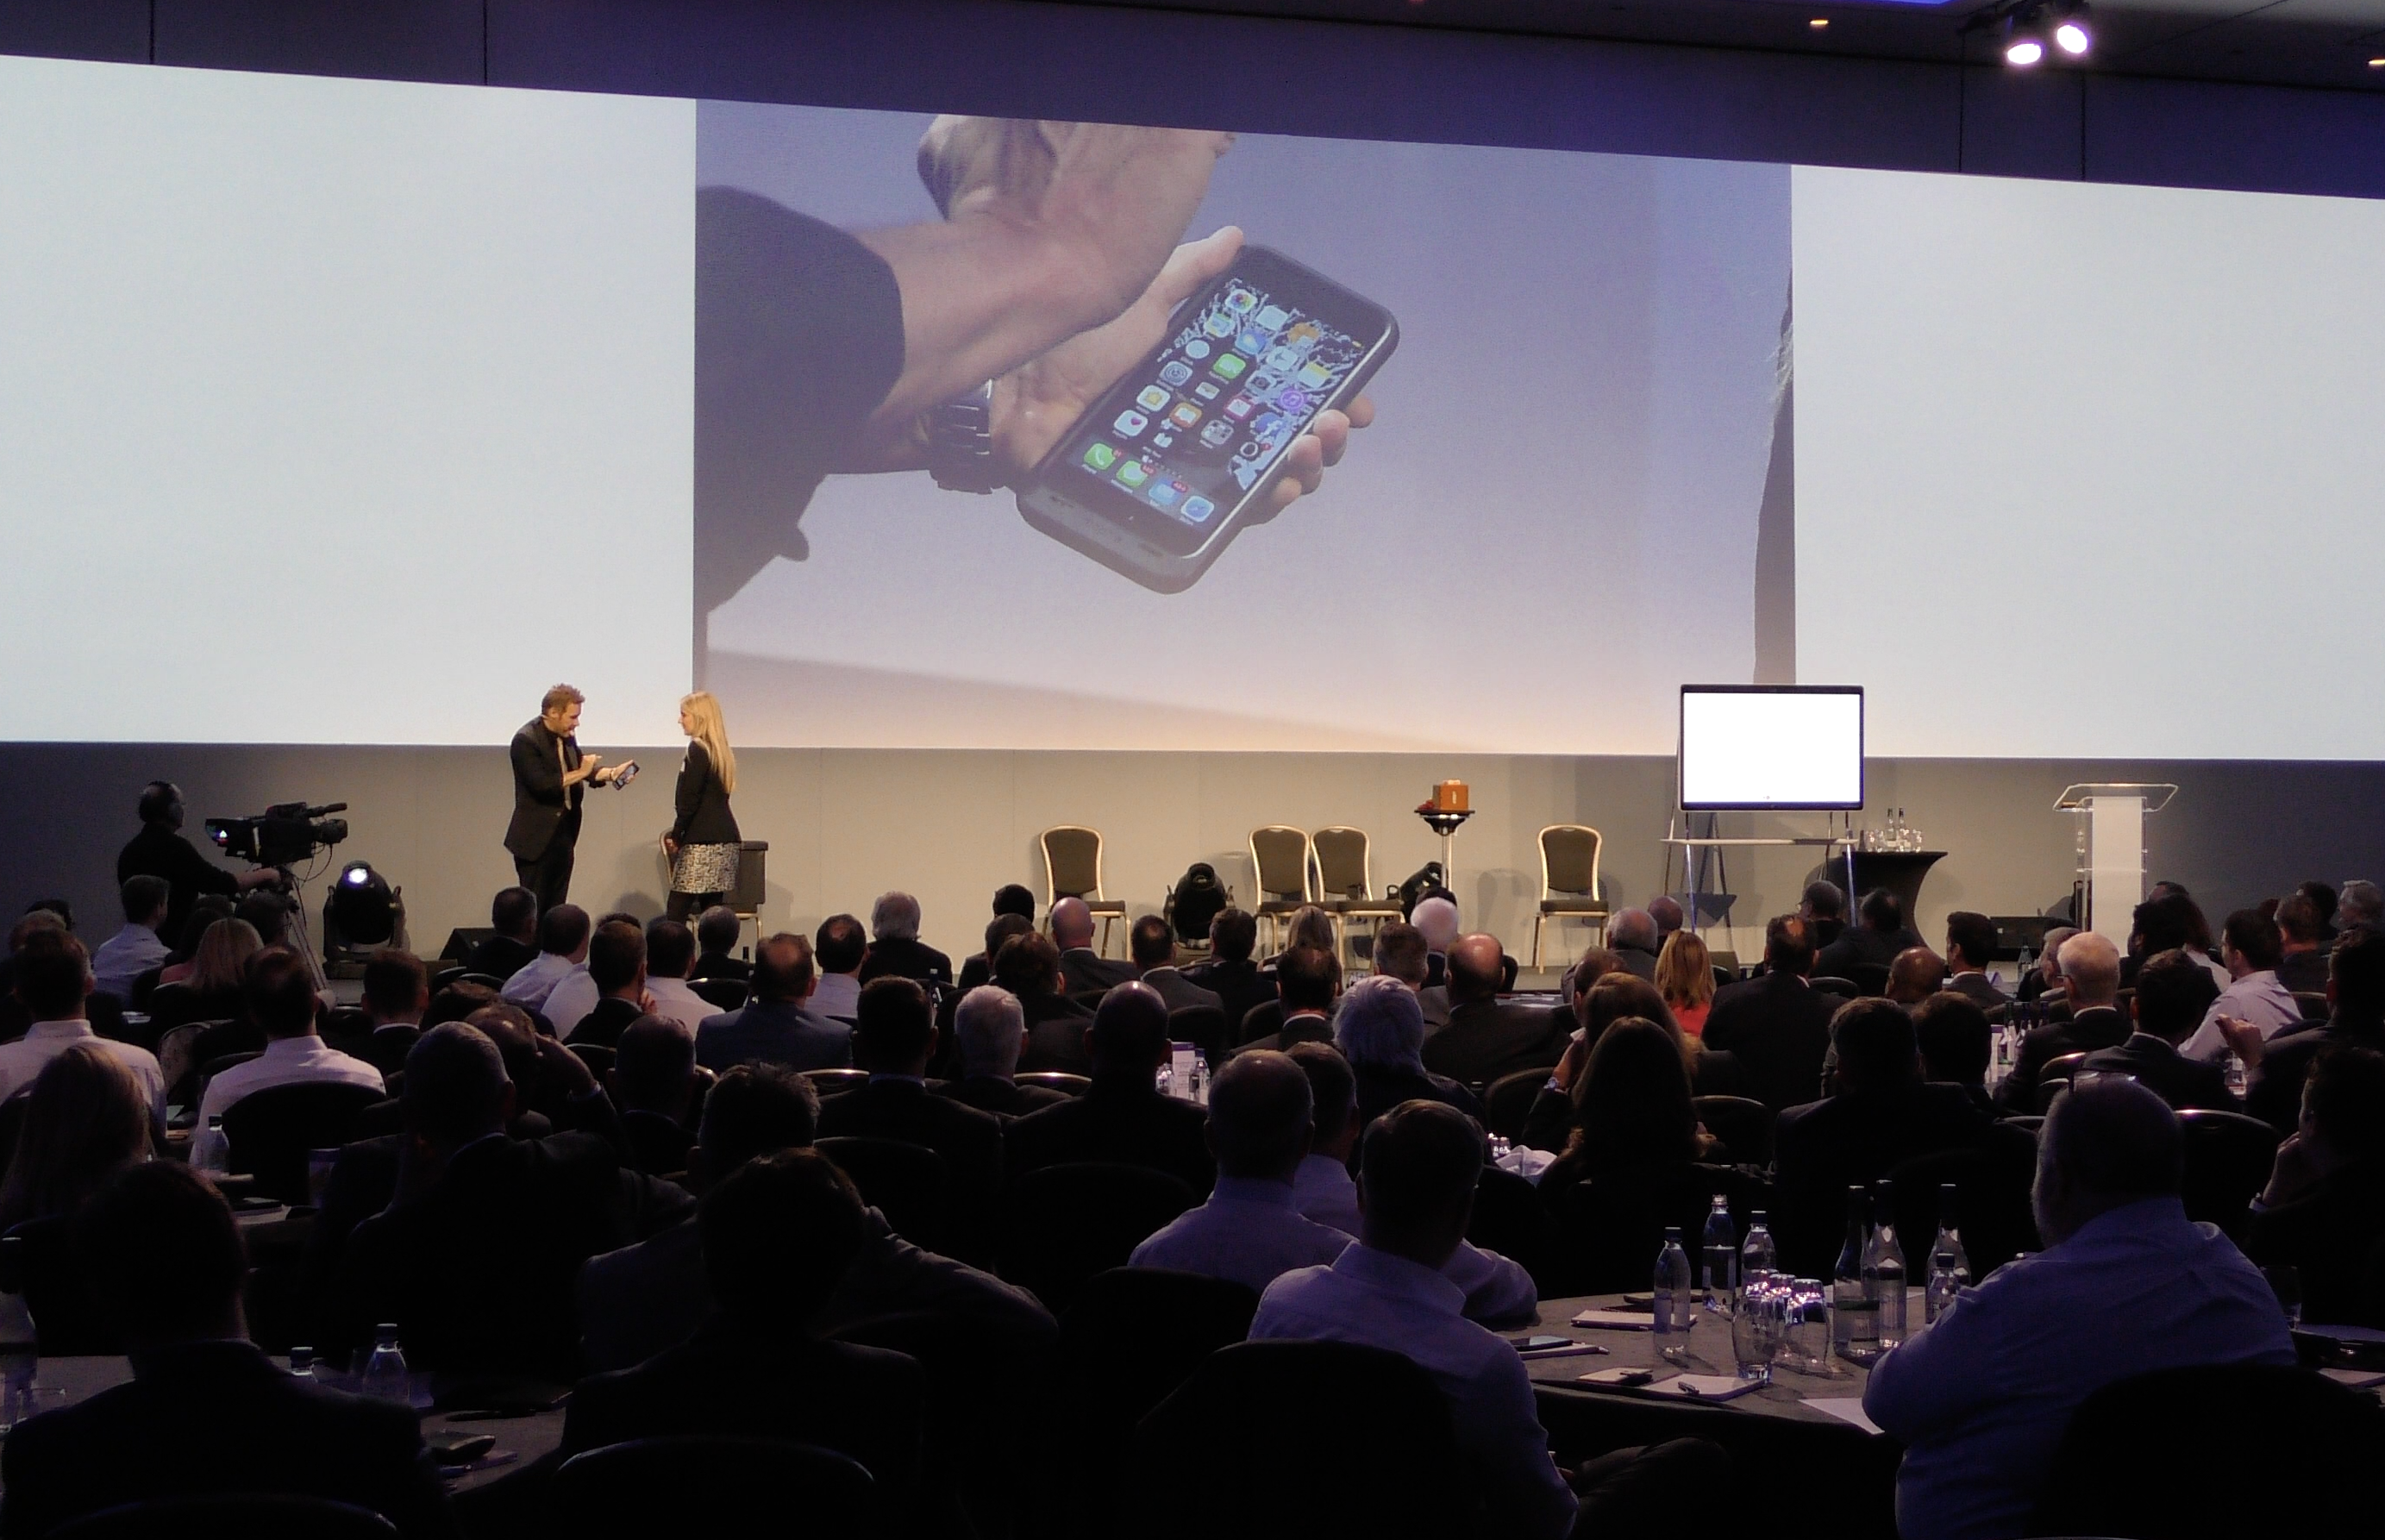 iPhone & iPad Magician On Stage